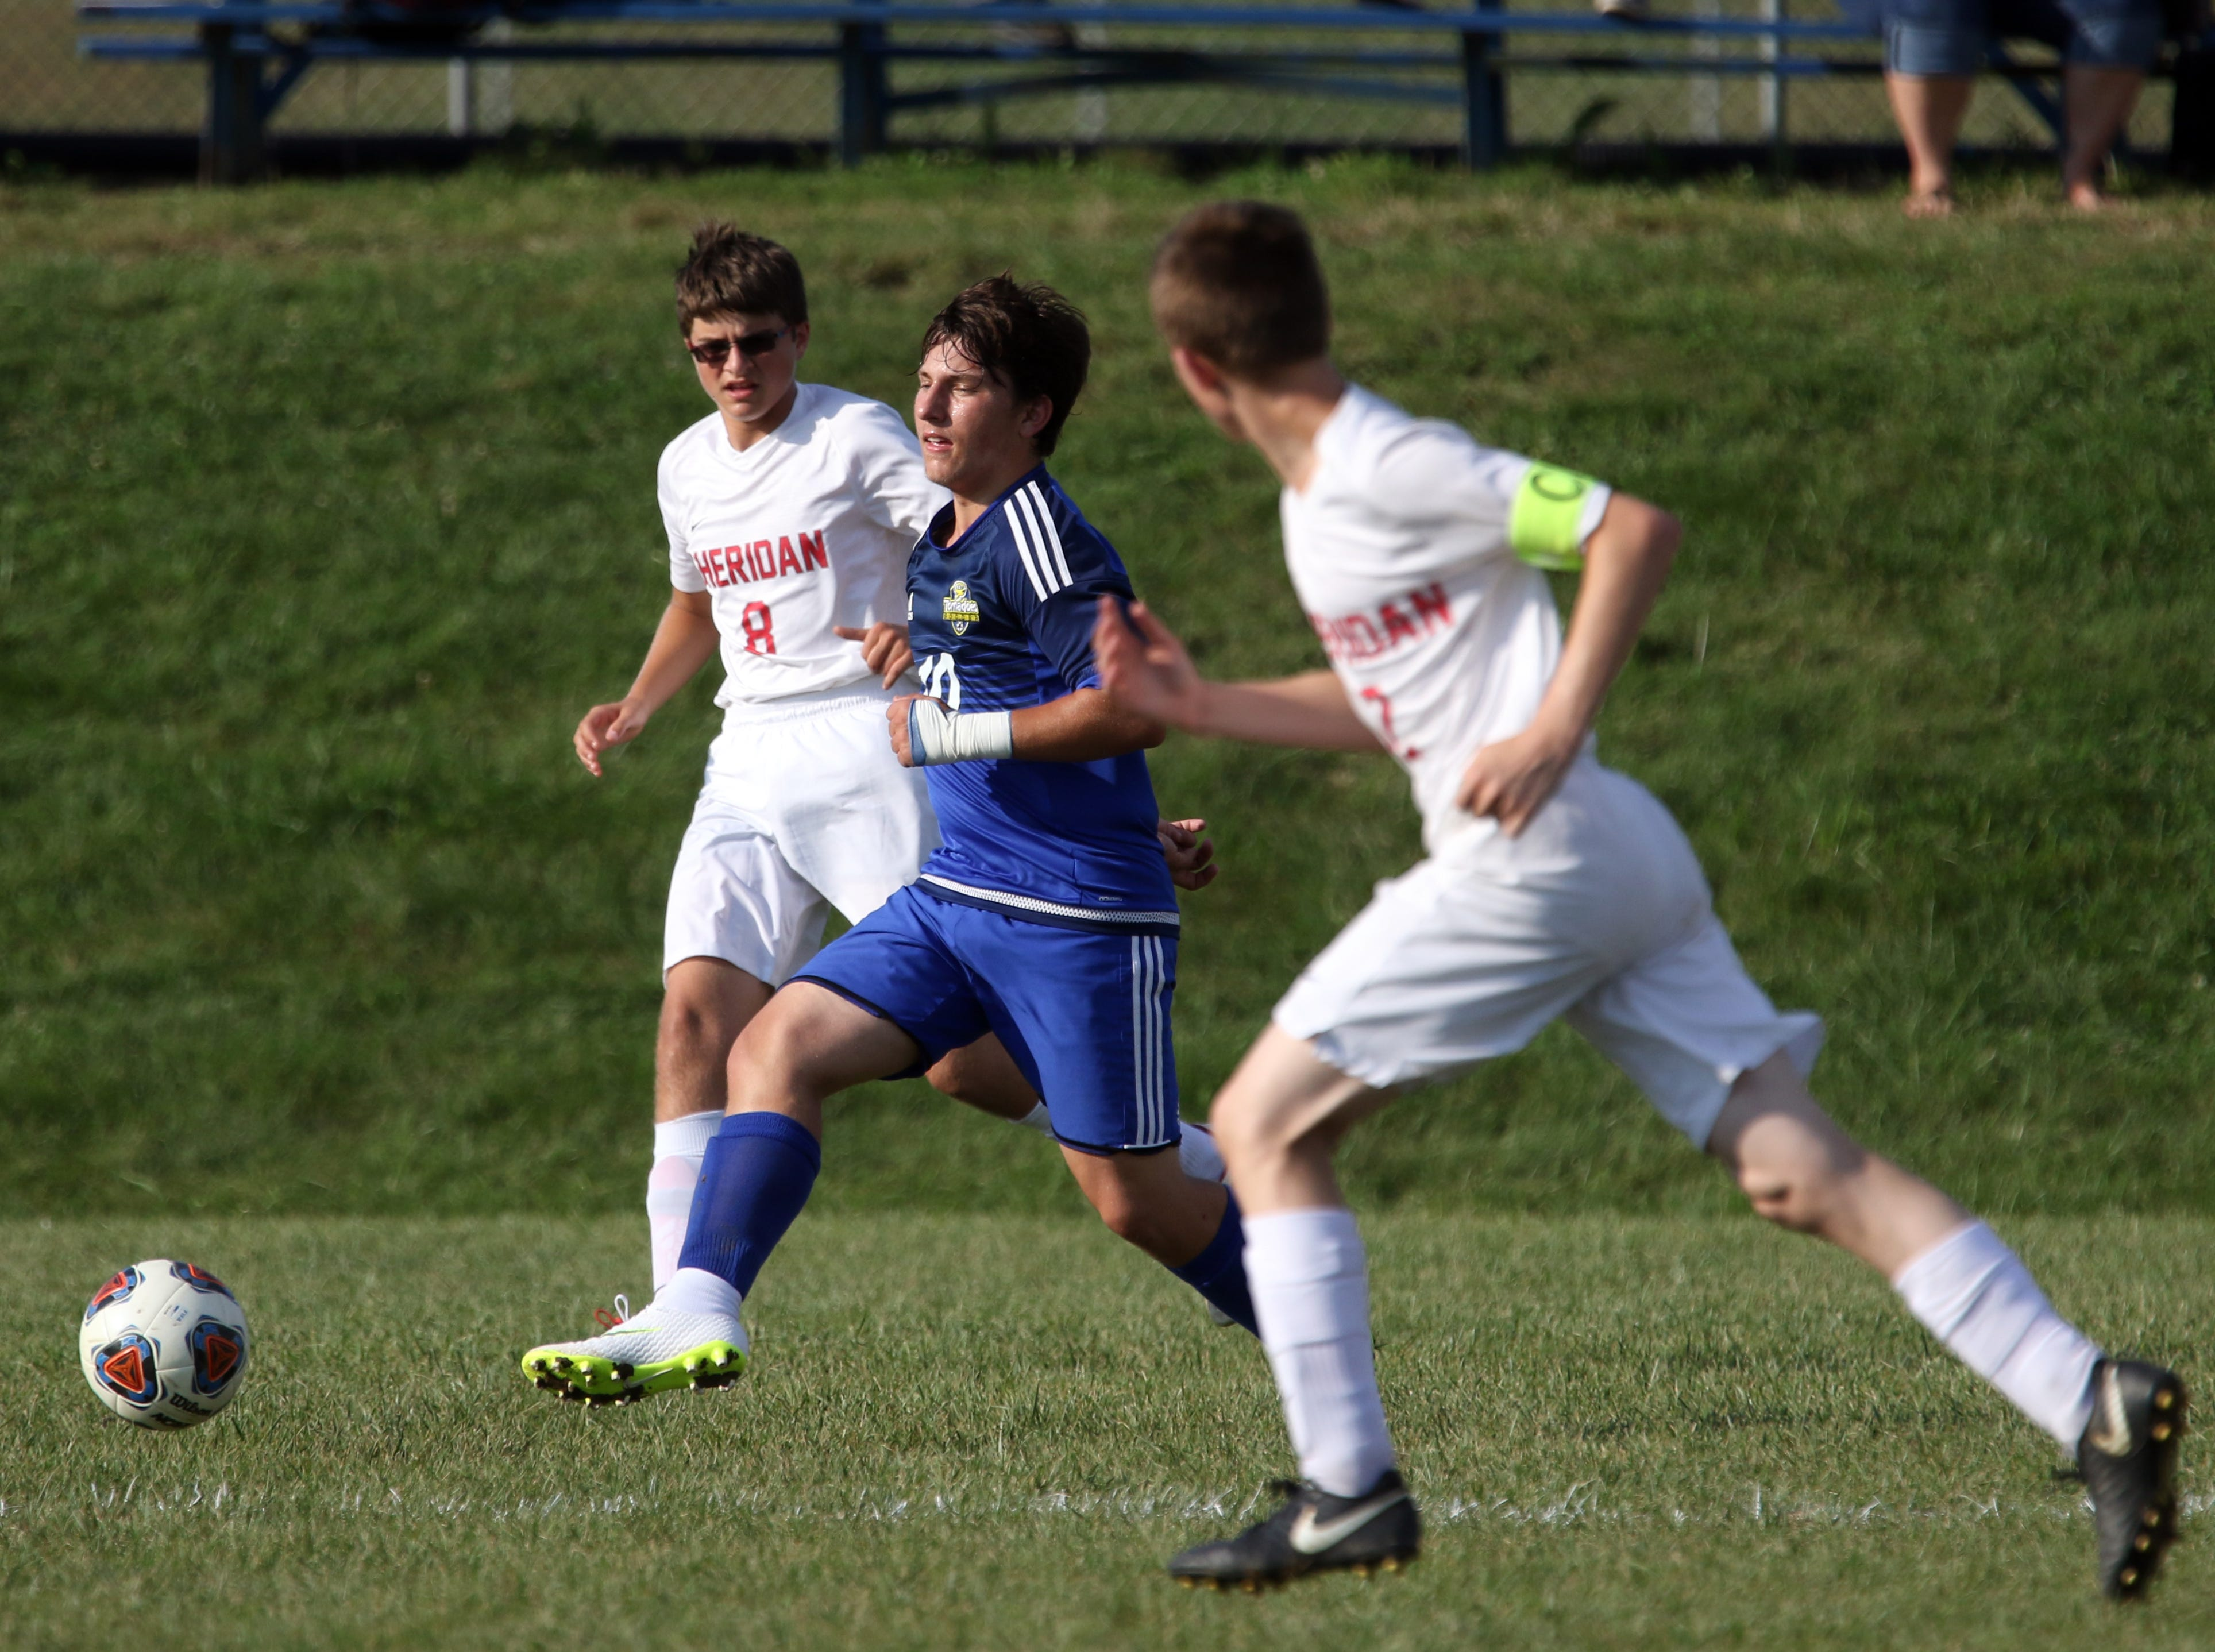 West Muskingum's Karson Dennis moves with the ball against Sheridan.